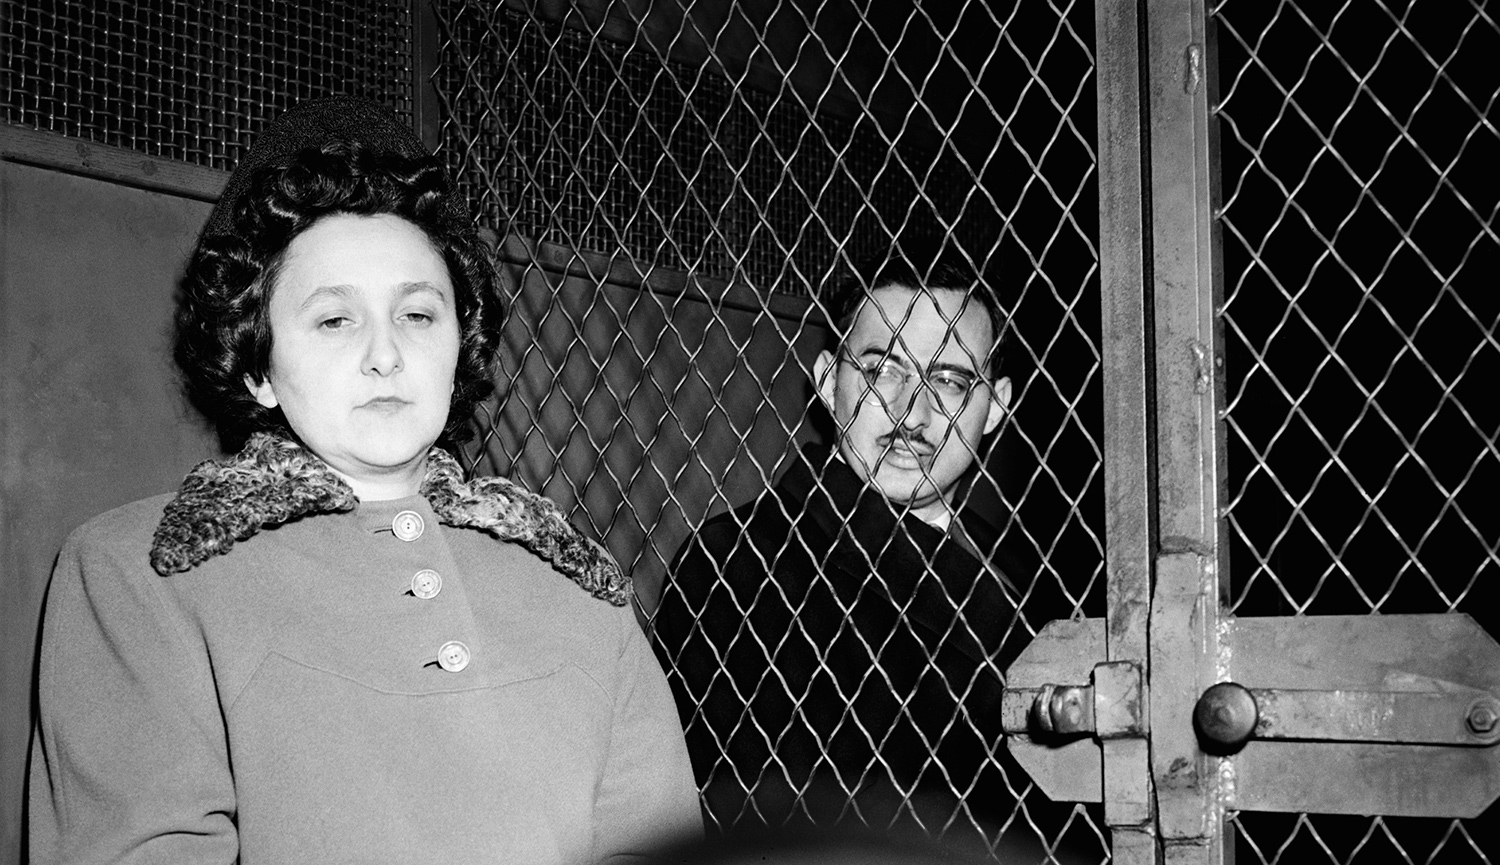 Ethel and Julius Rosenberg sitting in a police van after being convicted of espionage. Bettmann.